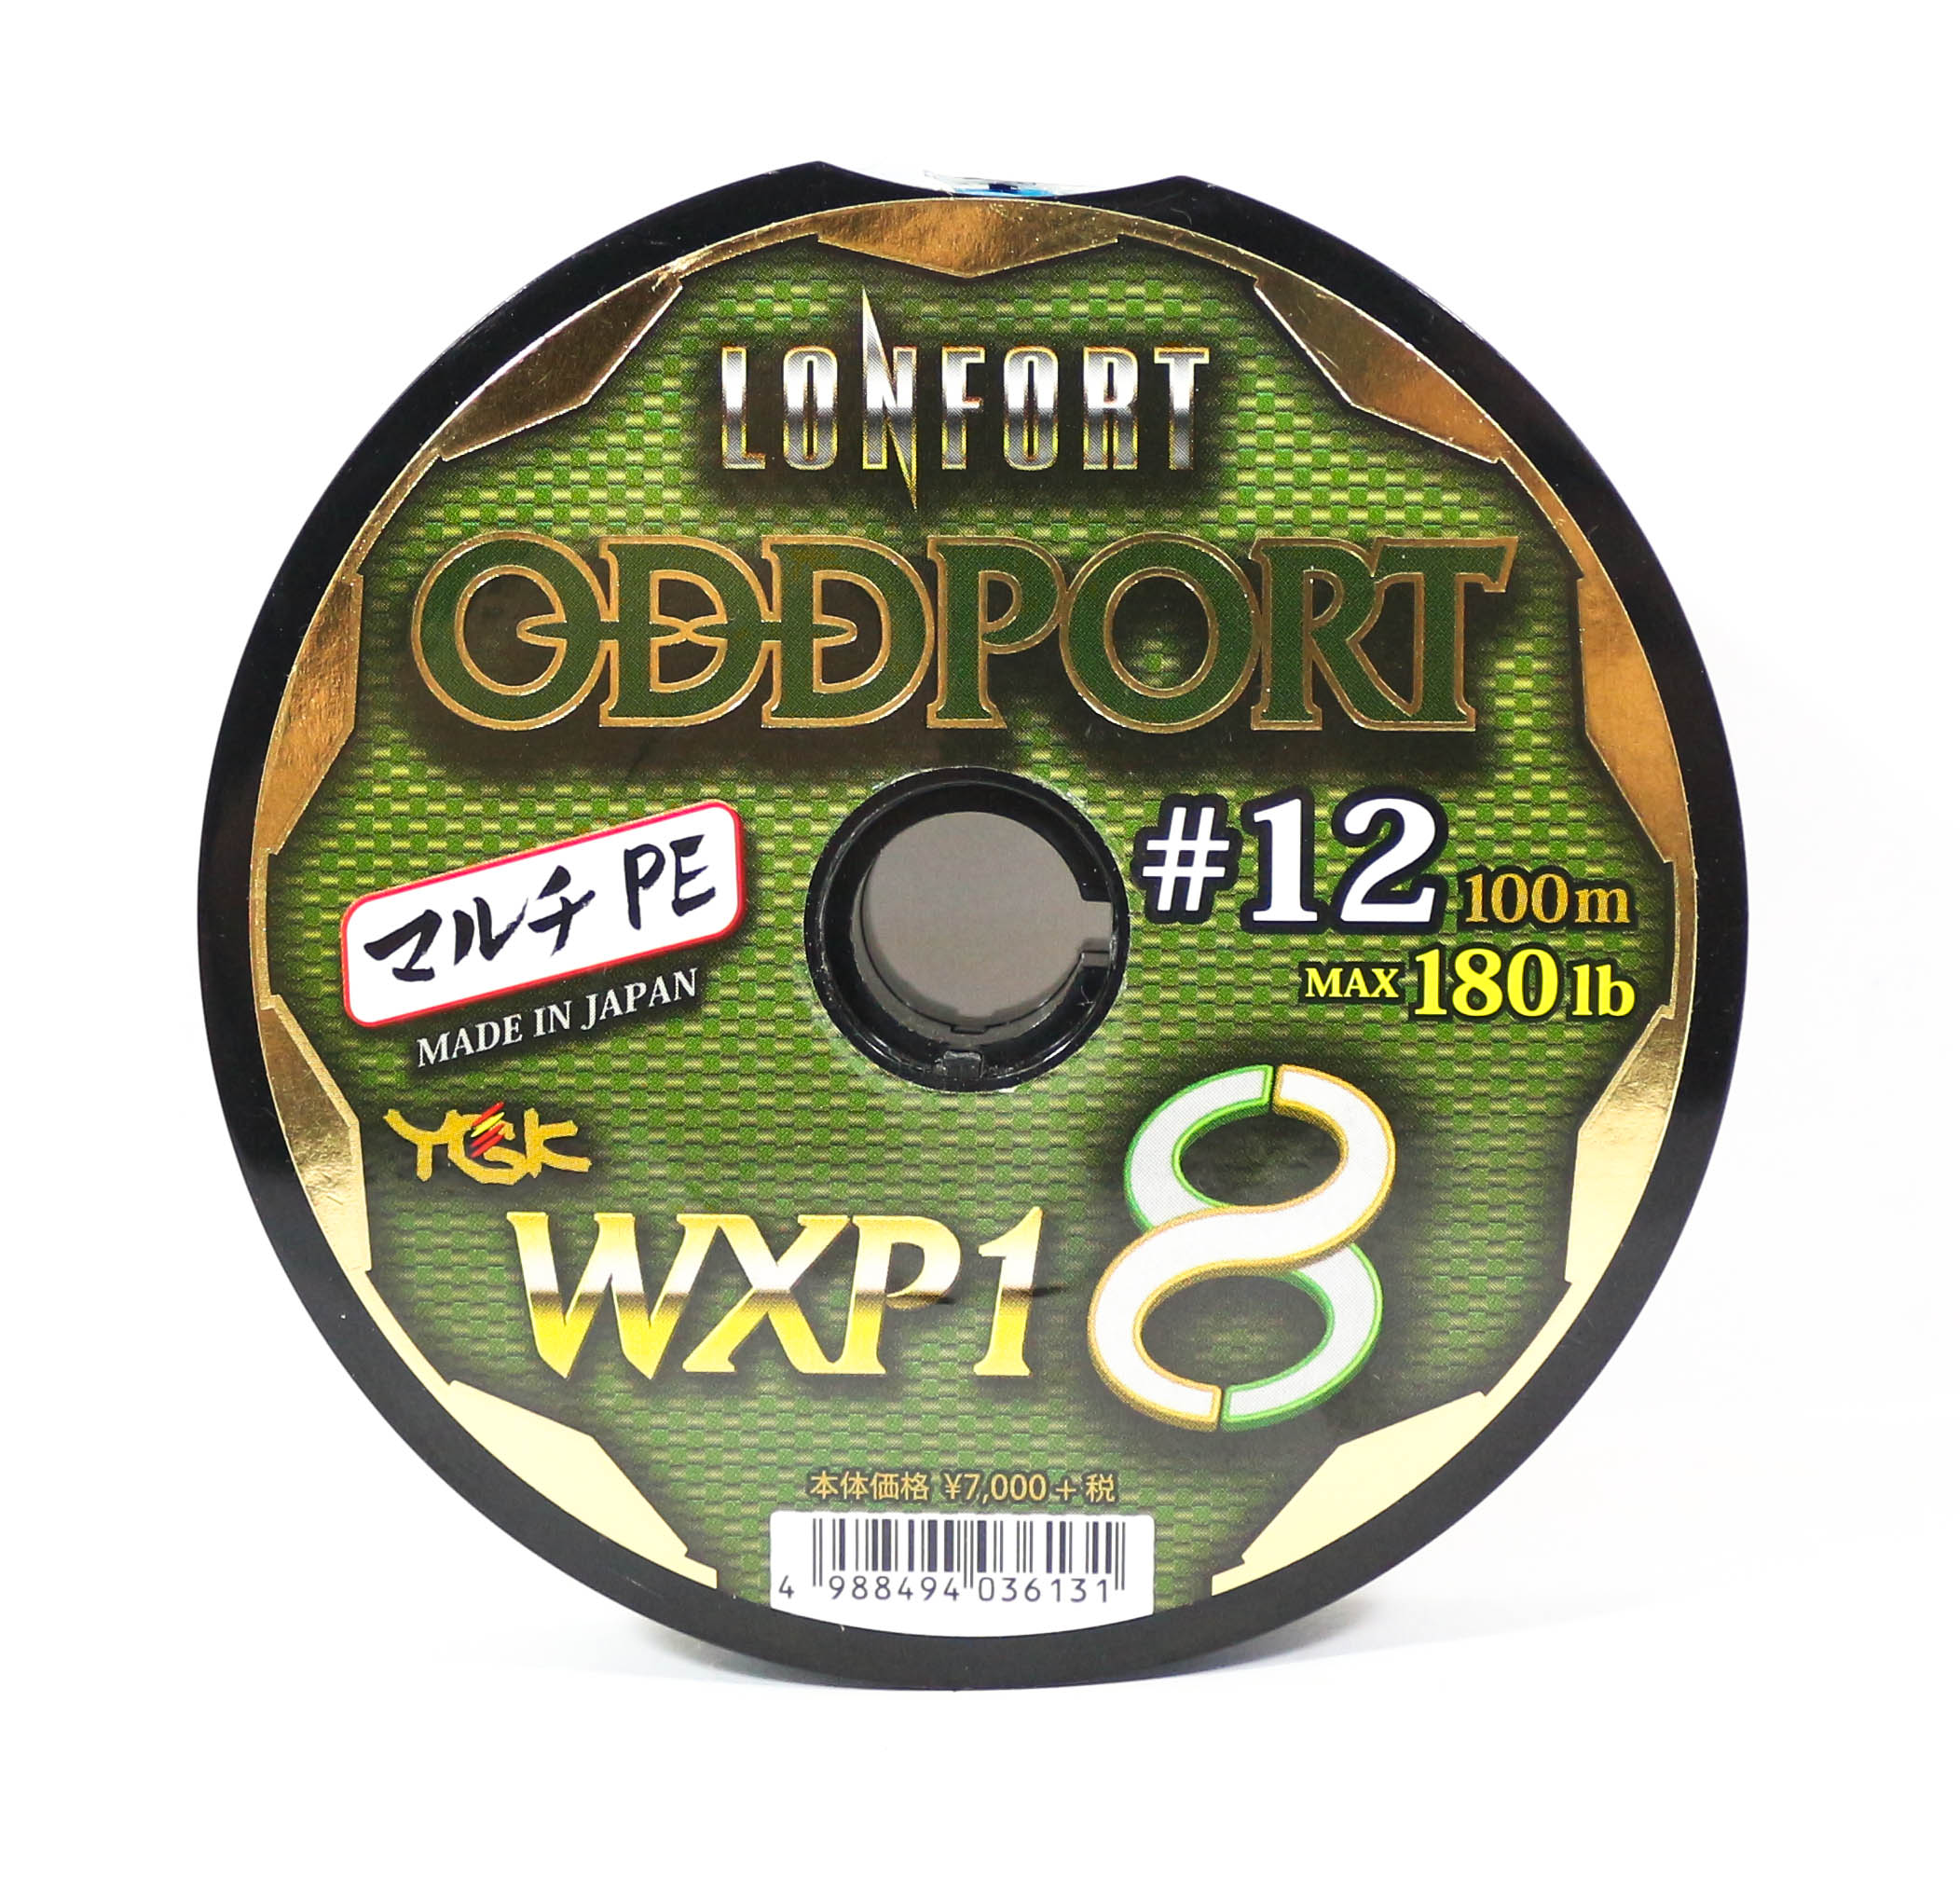 Sale YGK P.E Line Odd Port WXP1 High Quality 200m P.E 12 , 180 lb (0314)